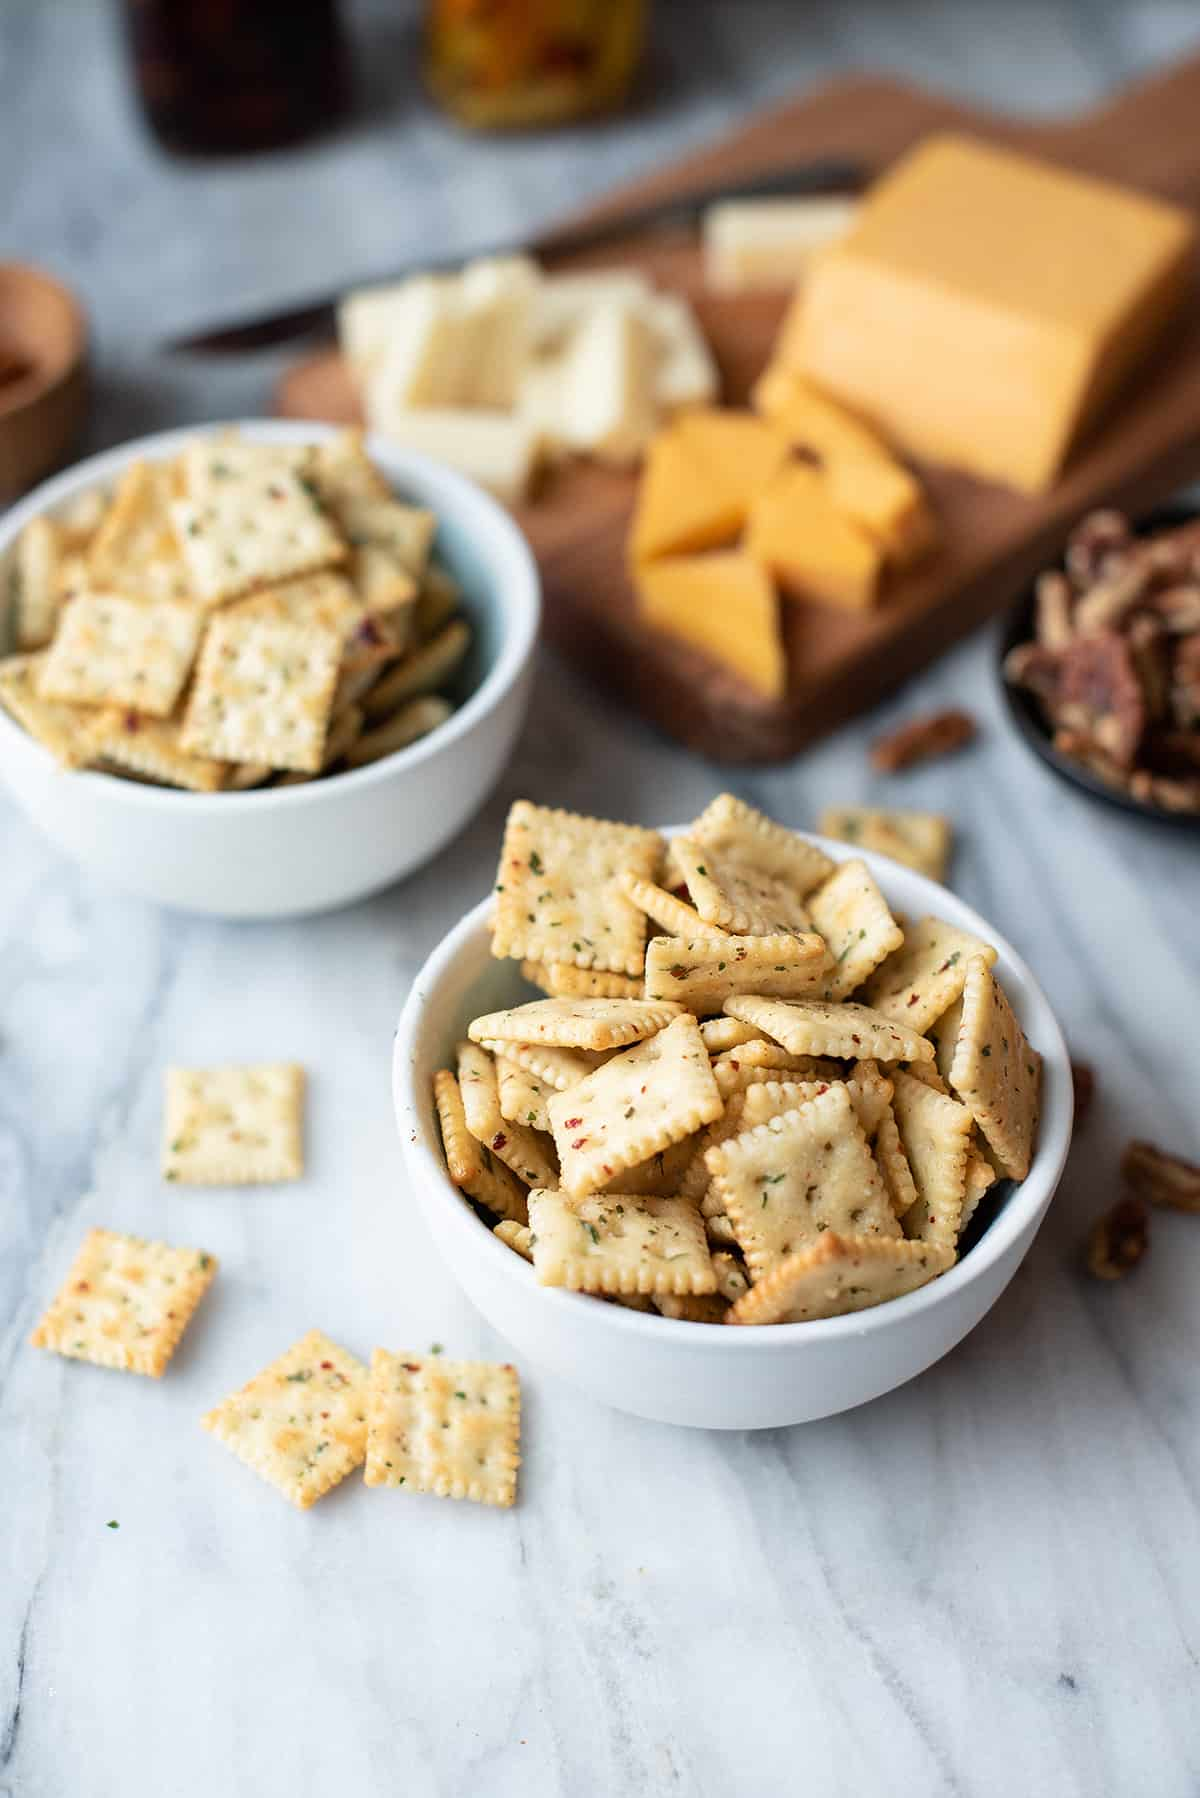 zesty cool ranch crackers (made with mini saltines) in bowl with cheese plate